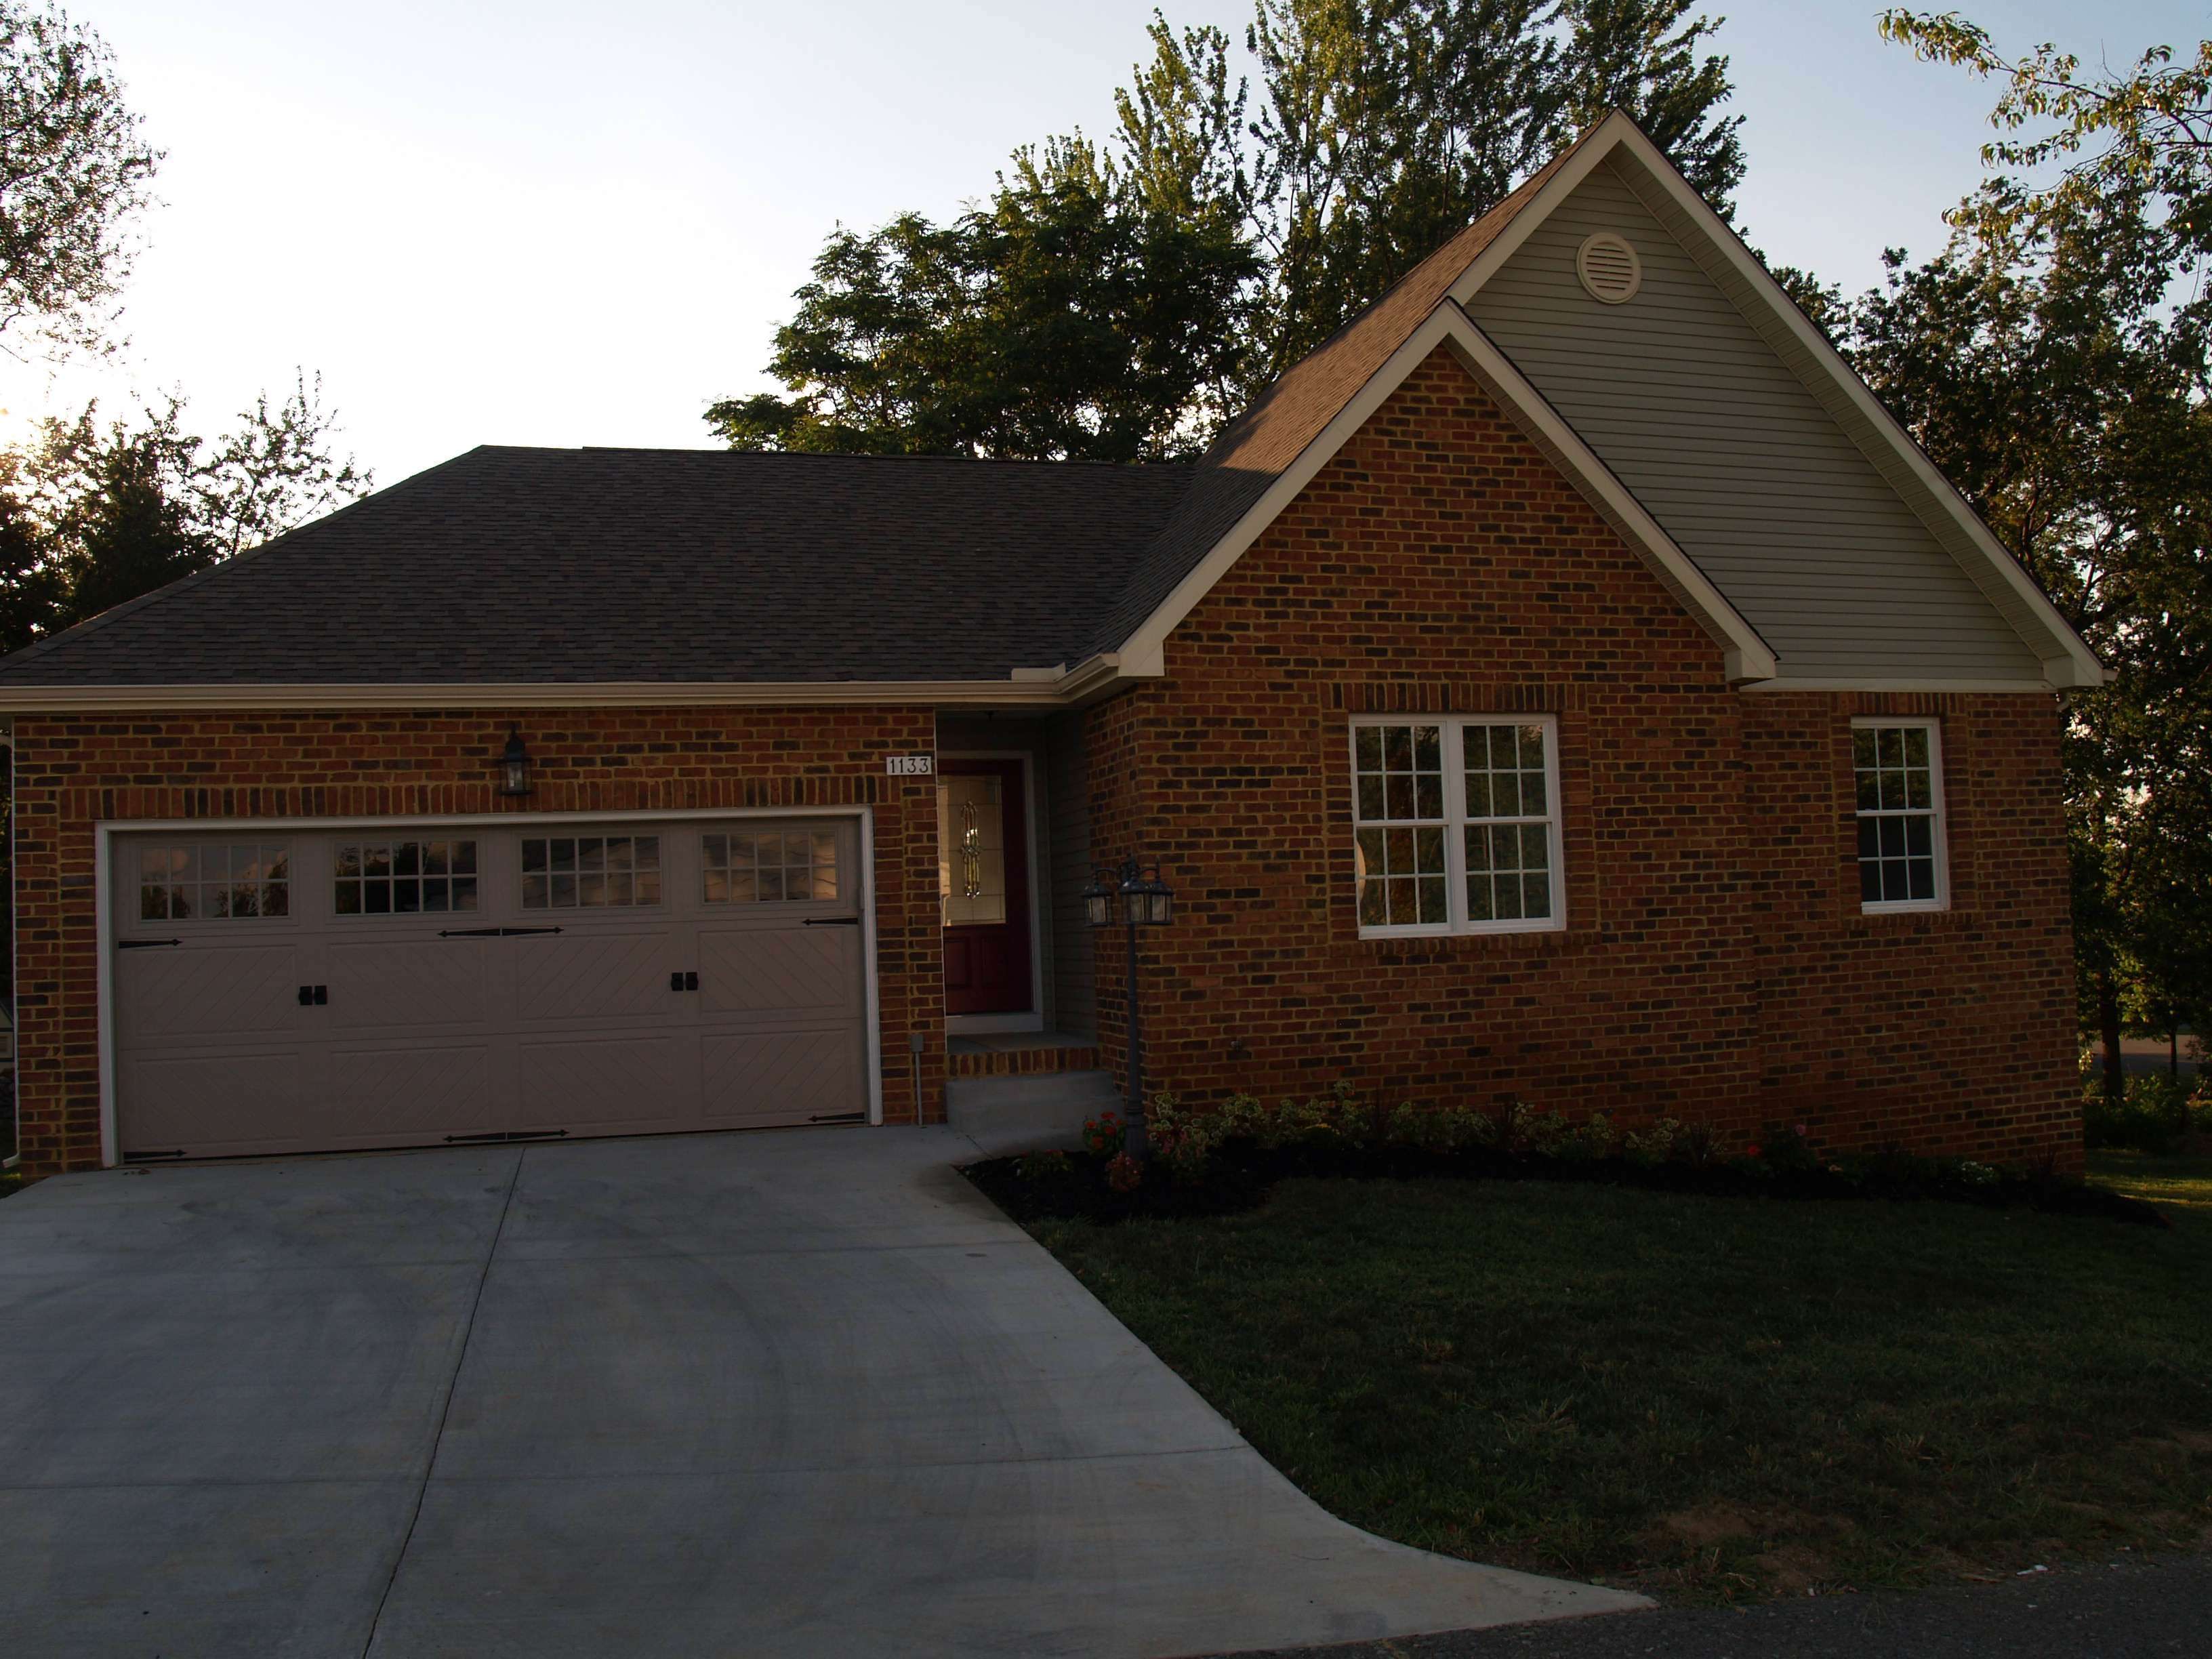 Below Is A New Home We Just Completed In Winchester,VA.